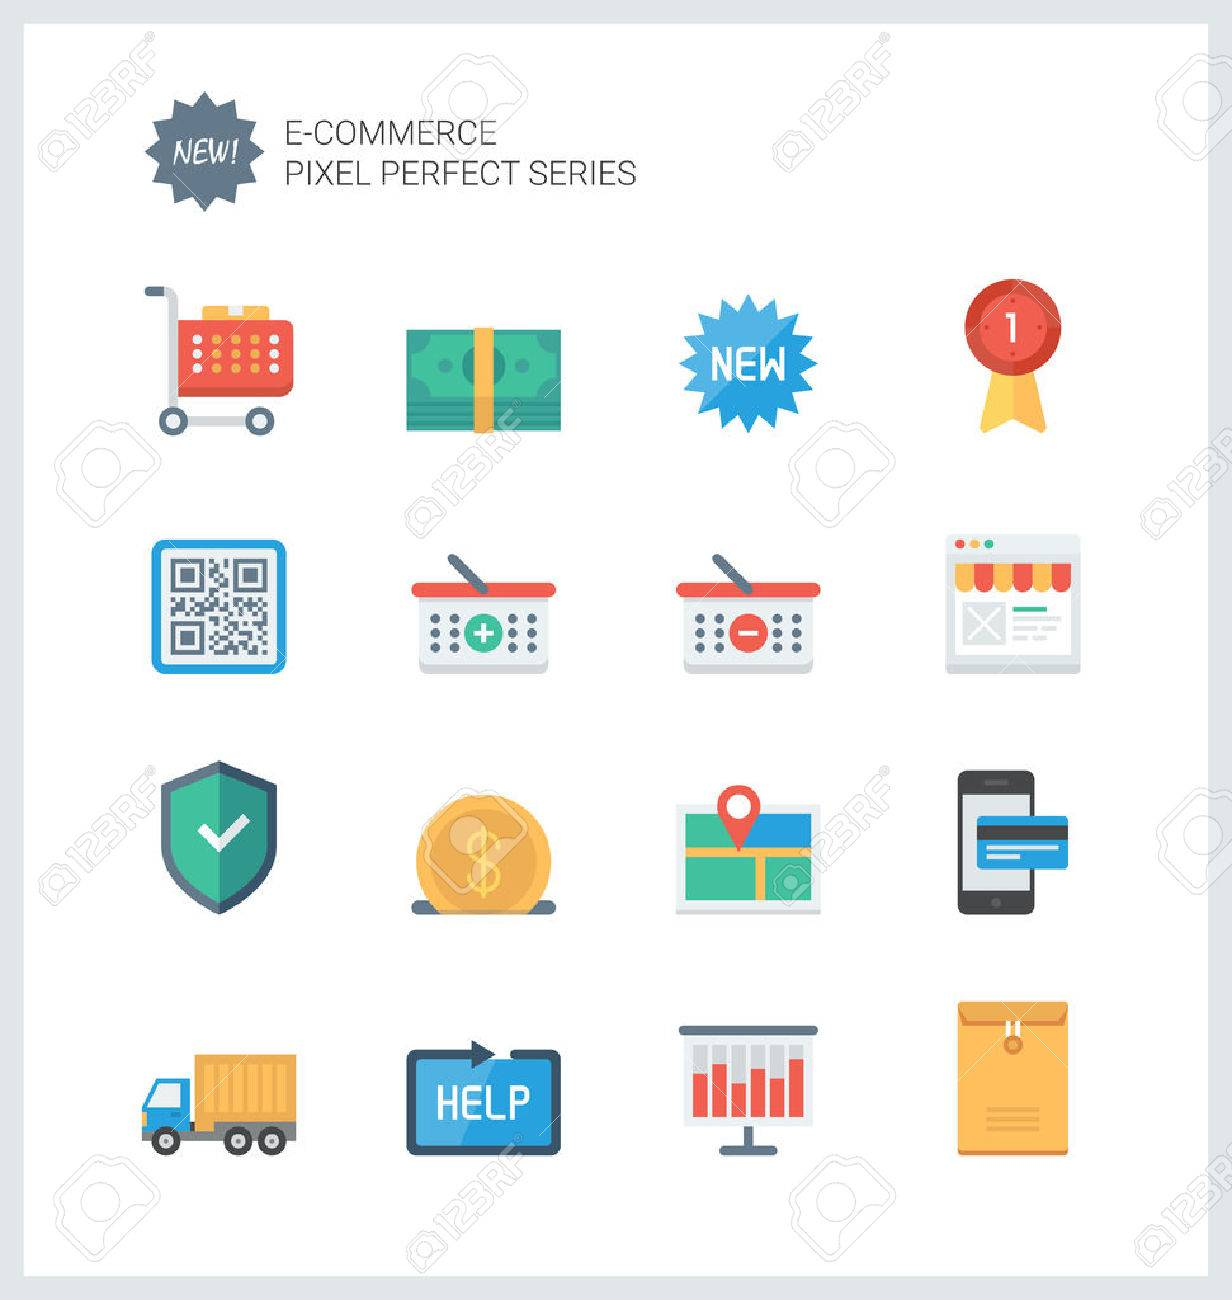 Pixel perfect flat icons set of e commerce shopping symbol online pixel perfect flat icons set of e commerce shopping symbol online shop elements and altavistaventures Images